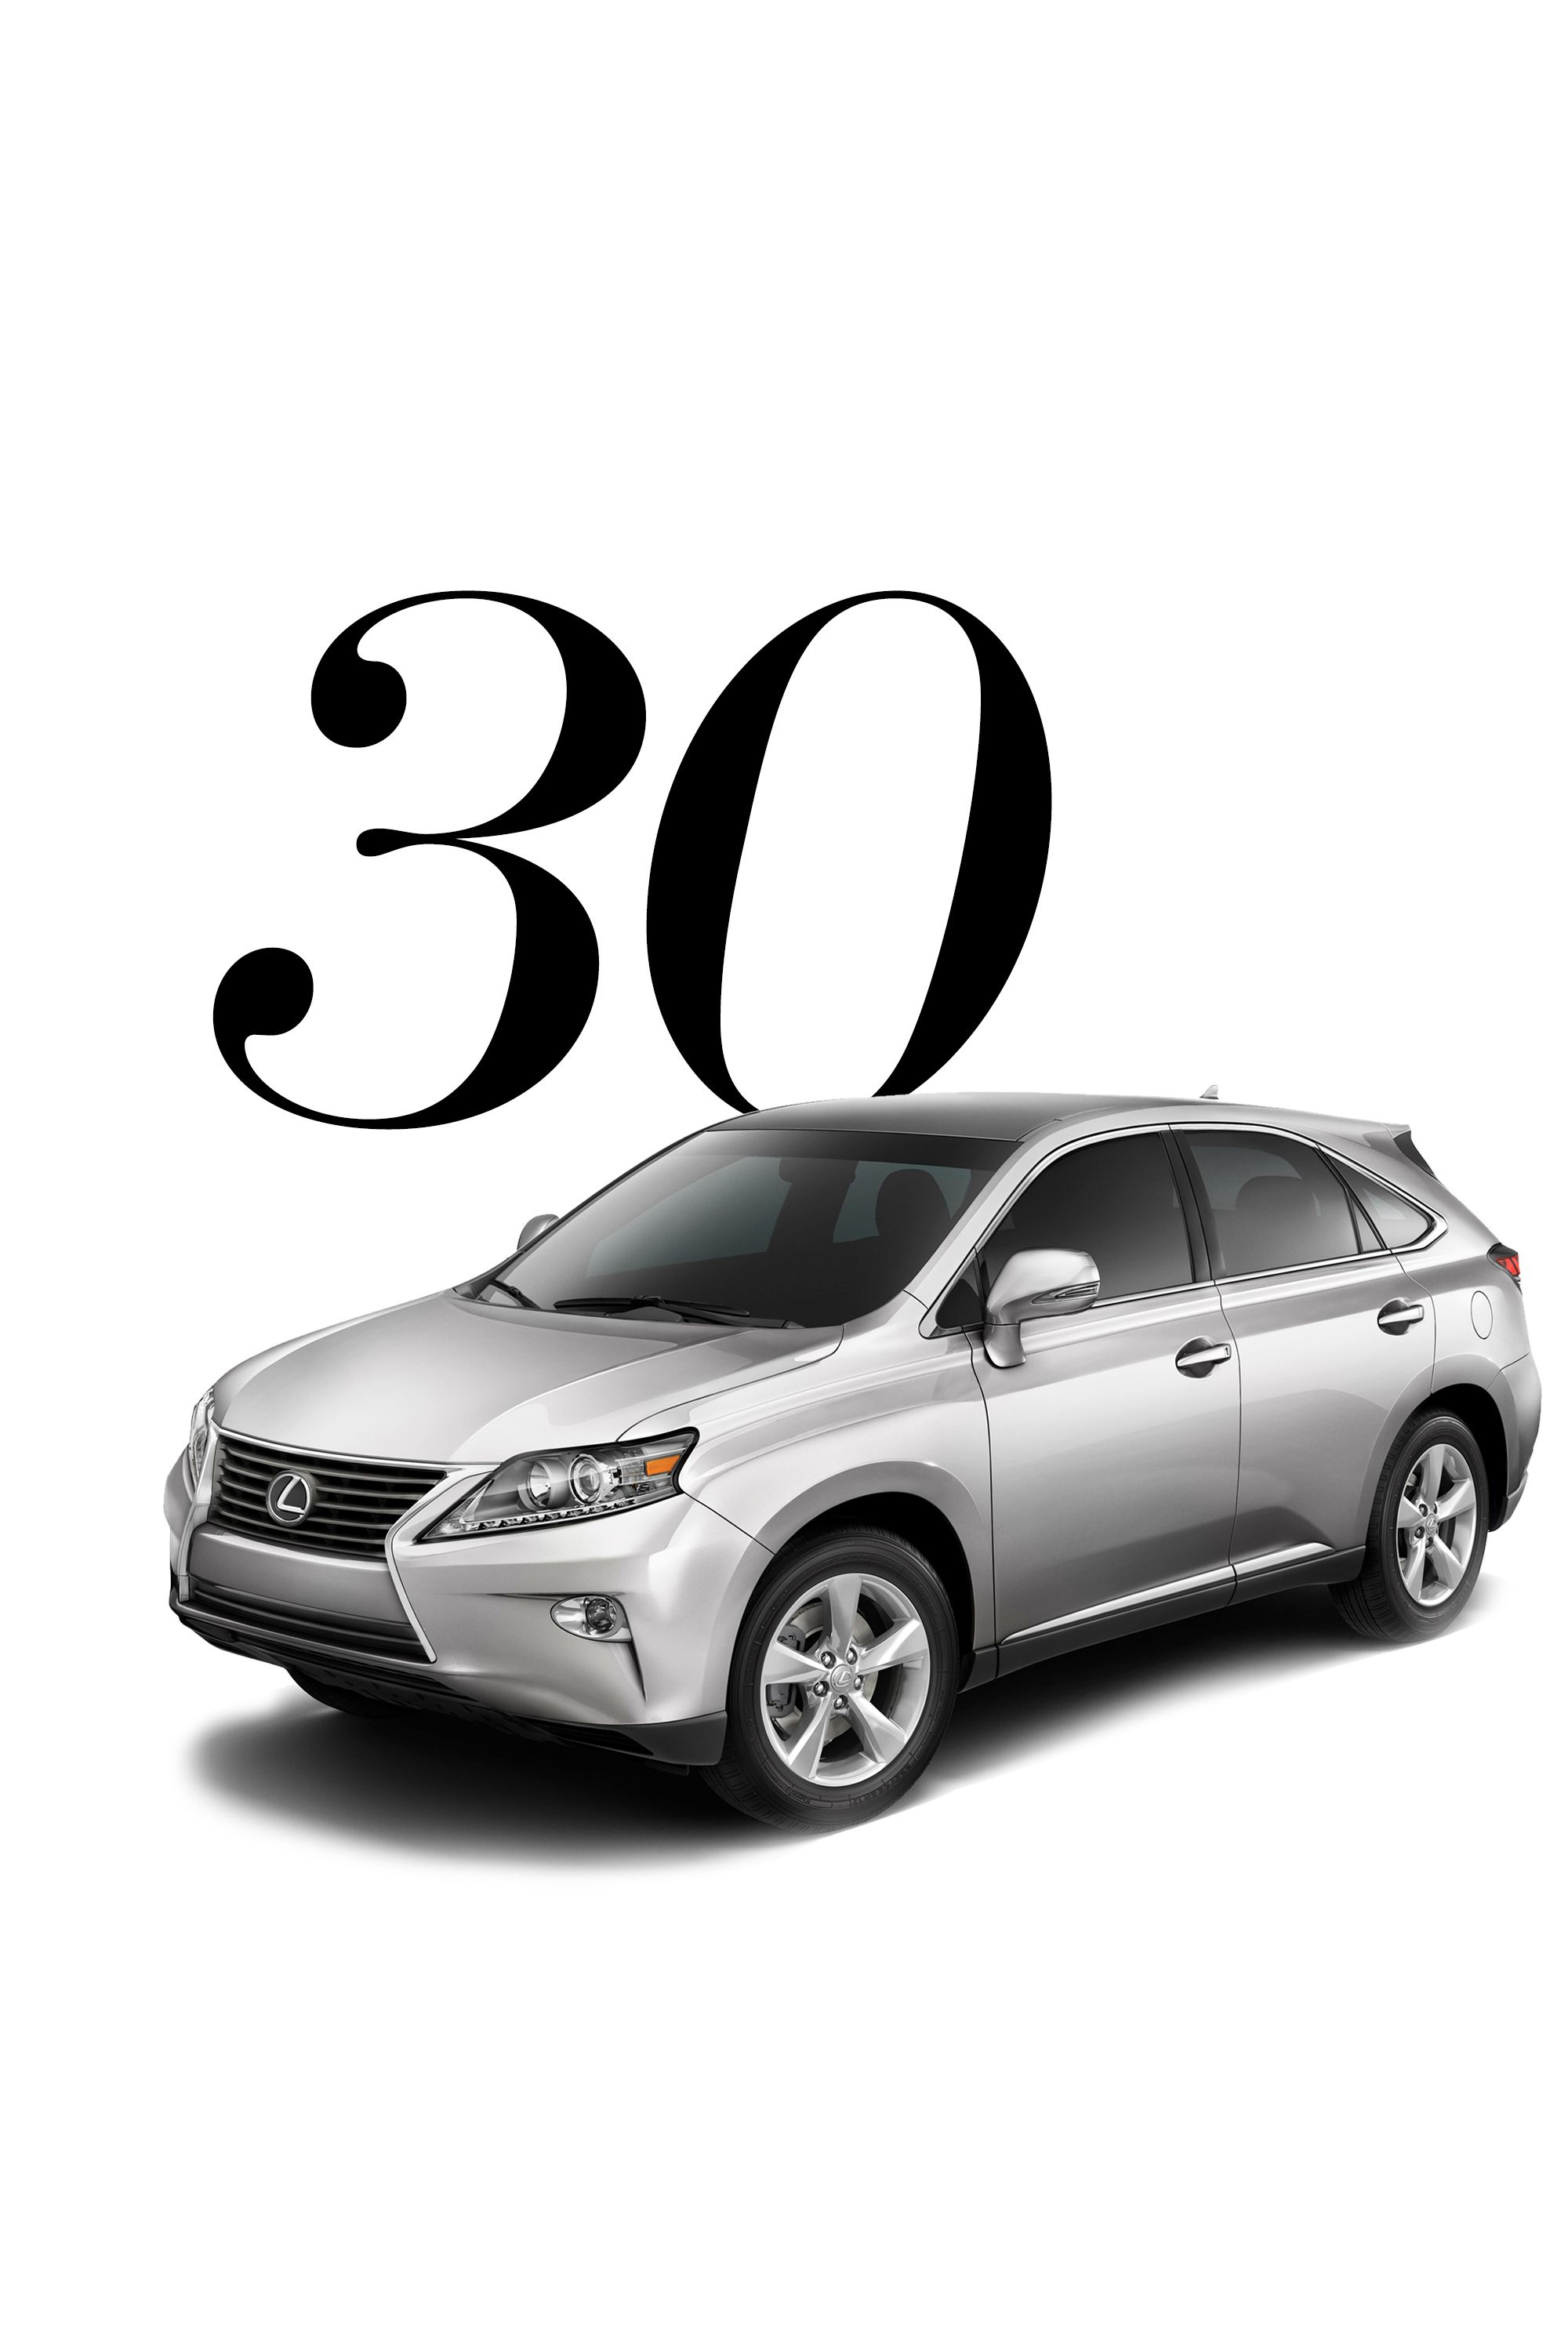 """You've learned how to dress in style, so isn't it time you arrive in style, too? Once you hit the big 3-0, you can consider a ride that's as statement making as you are—and will last. (Obviously.)<strong>Splurge On: </strong>2015 Lexus RX, <a target=""""_blank"""" href=""""http://www.lexus.com/lcertified/models/2015-Lexus-RX """">various locations</a>"""